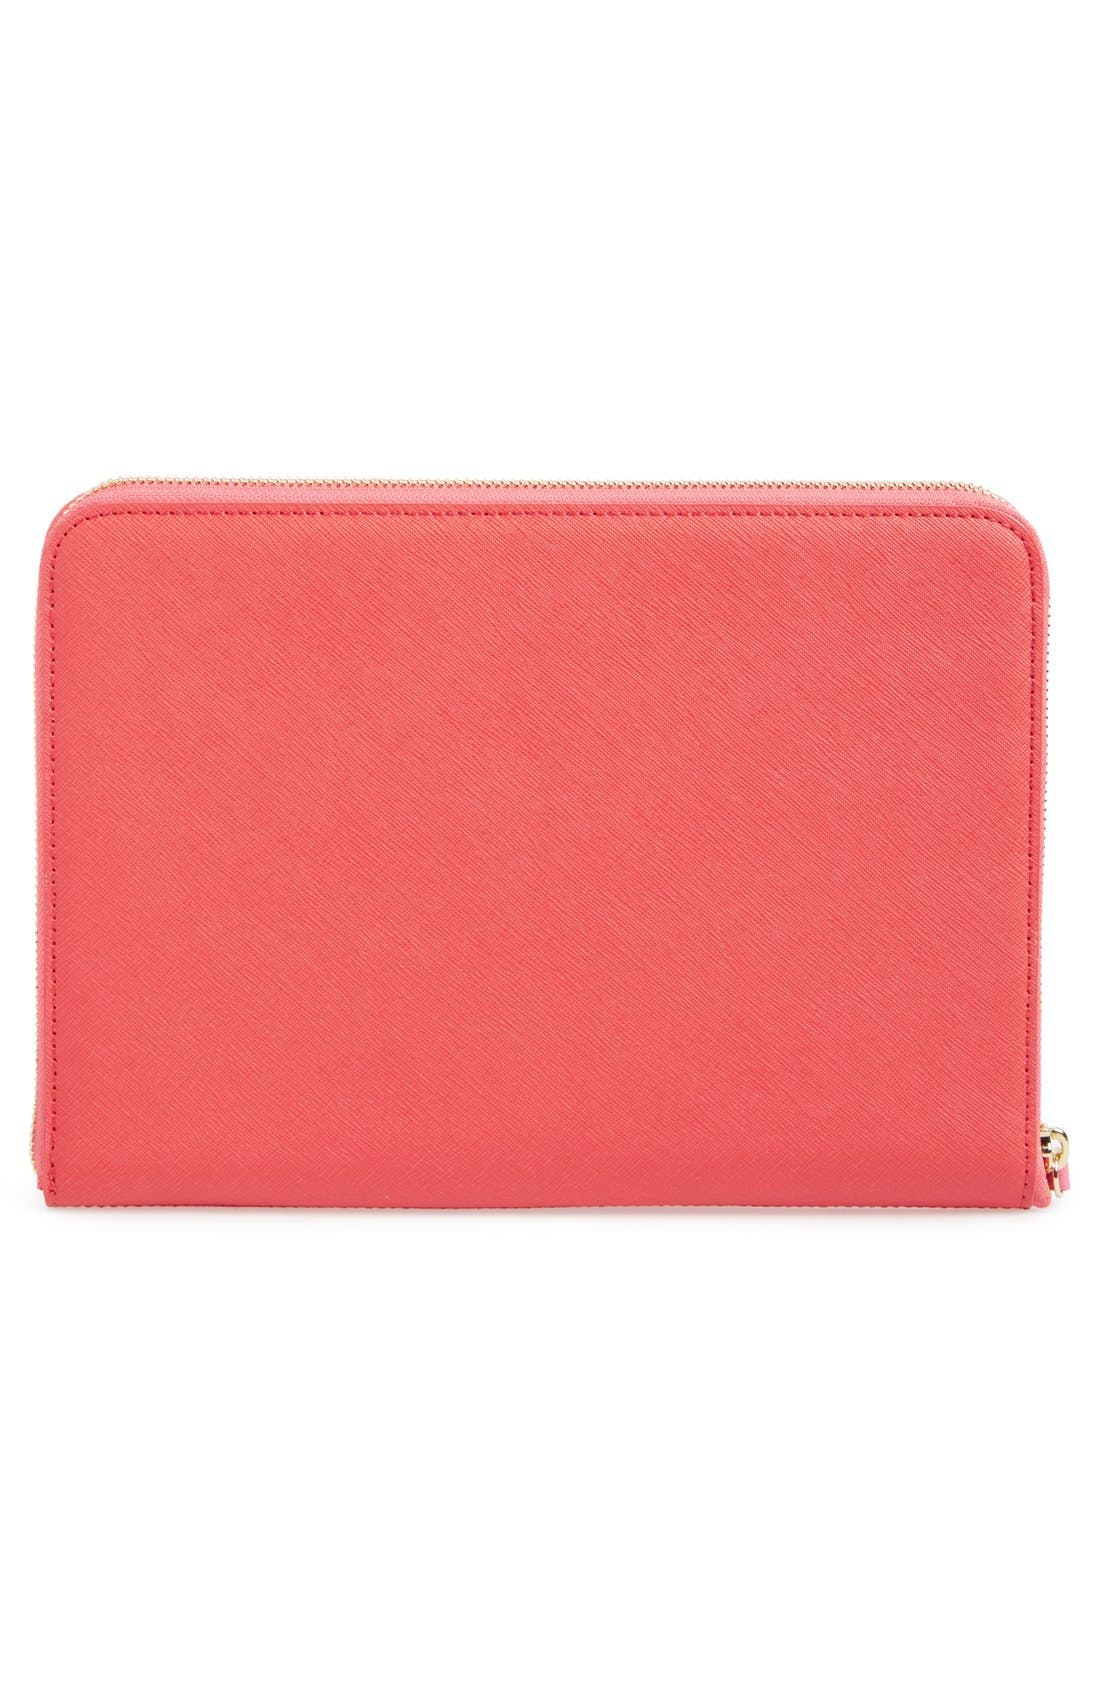 Alternate Image 3  - kate spade new york scalloped iPad Air sleeve